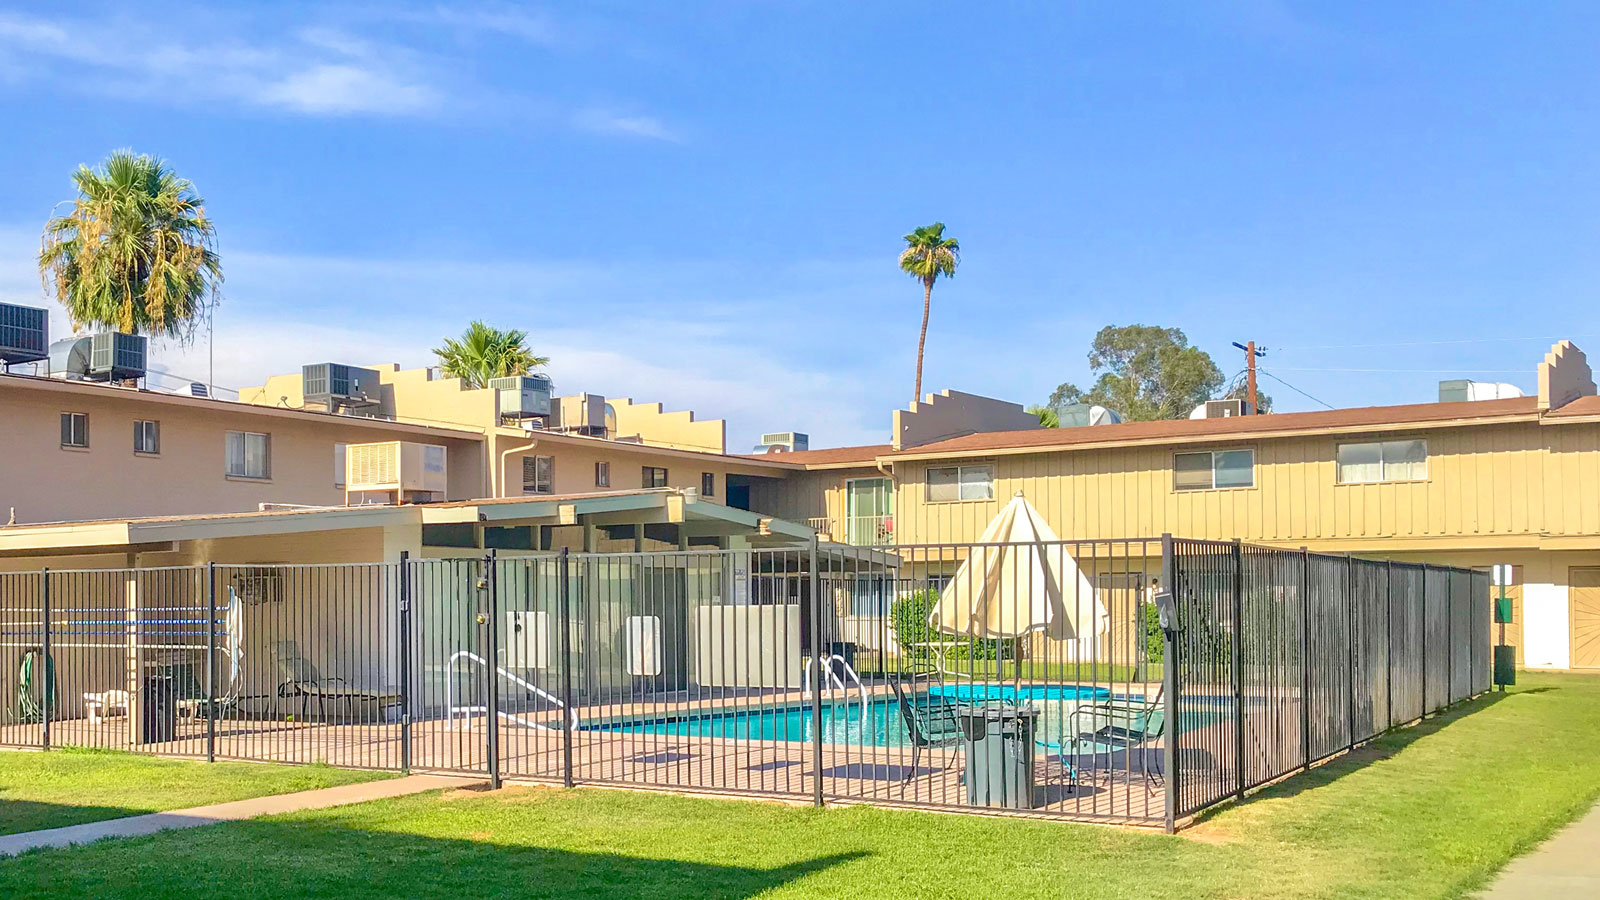 Phoenician Condominiums | 1633 West Missouri Avenue, Phoenix, AZ 85015 | 44 Units | Built in 1964 | $4,170,000 | 94,772 Per Unit | 103.01 Per SF